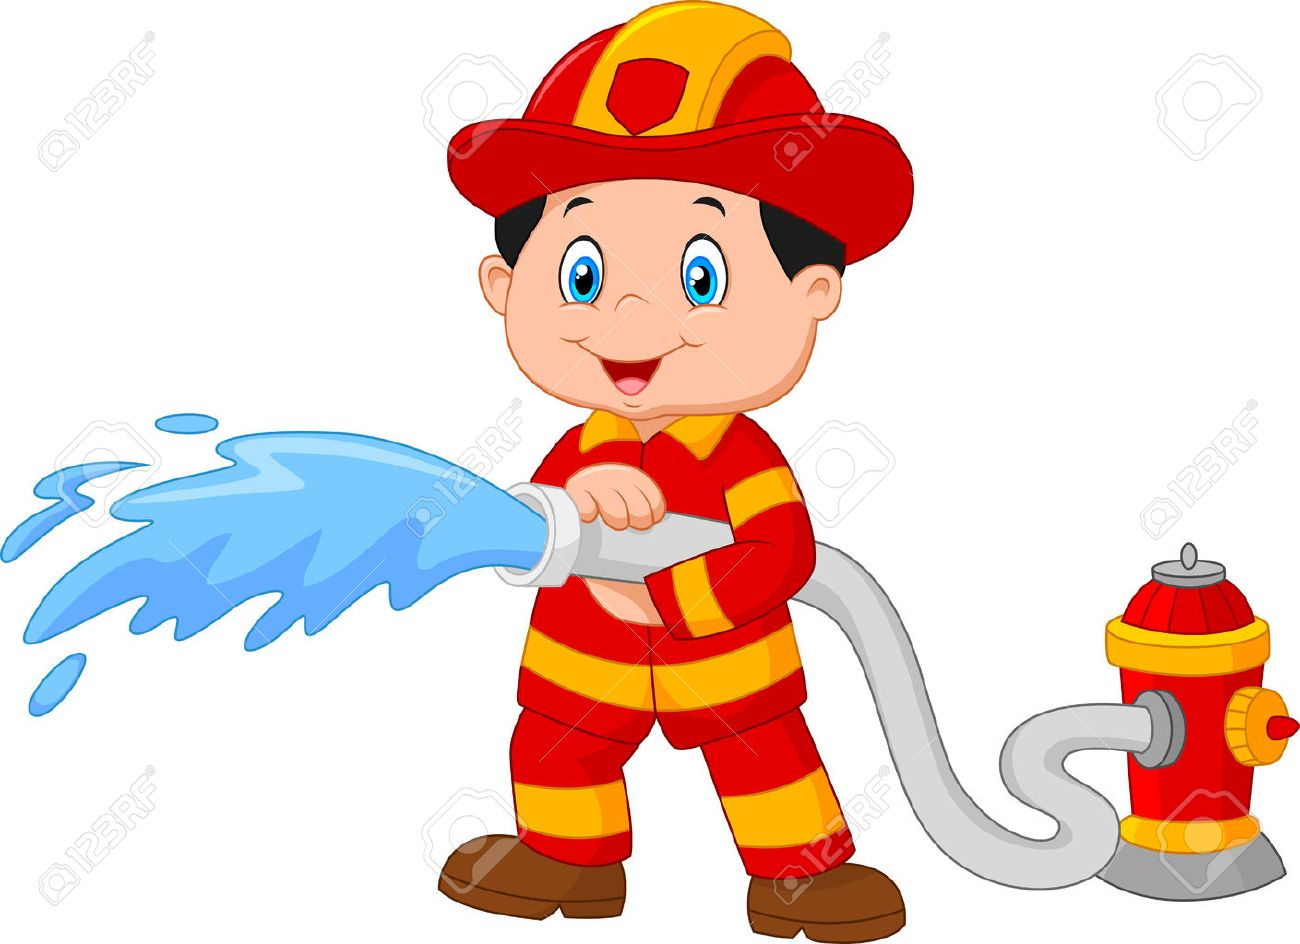 Cartoon Firefighter pours from a fire hose.